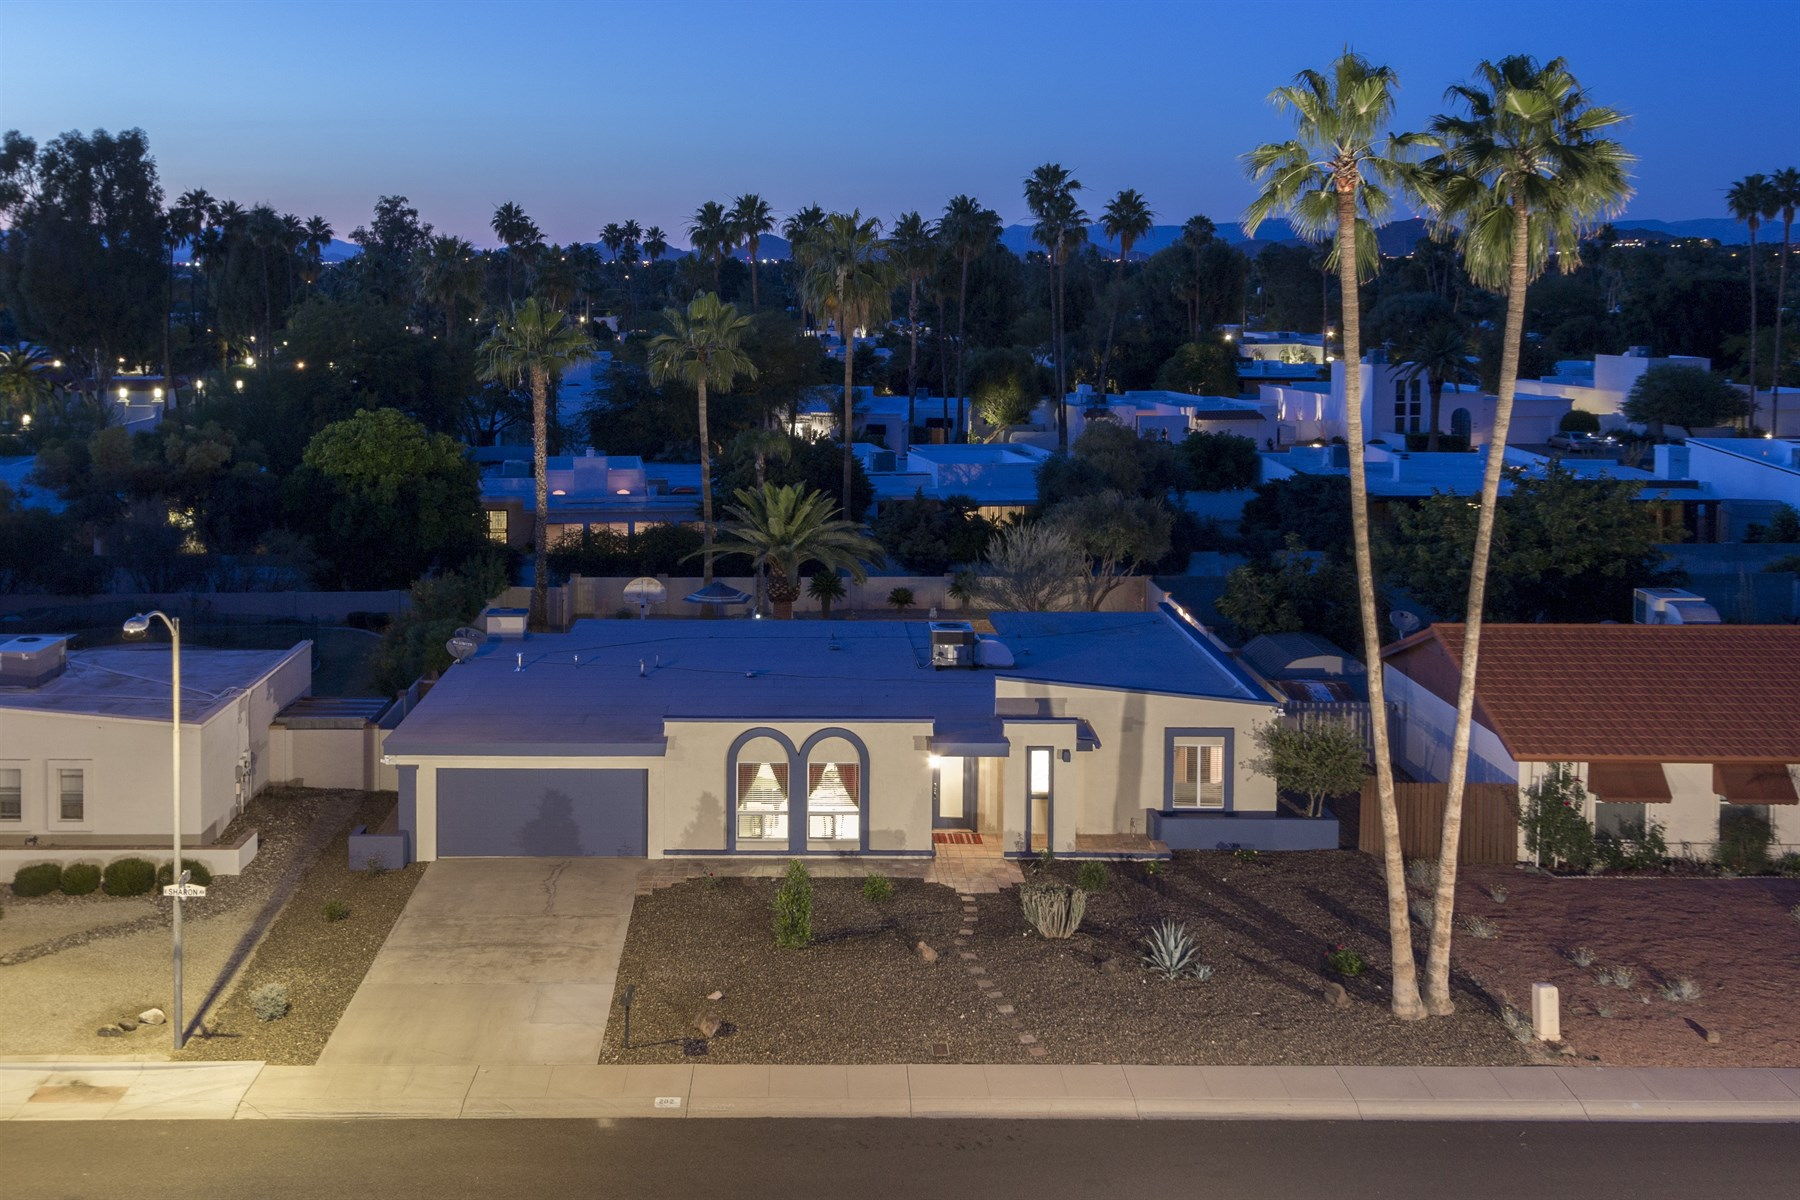 Maison unifamiliale pour l Vente à Relax in this meticulously maintained move-in ready home 202 E SHARON AVE Phoenix, Arizona 85022 États-Unis